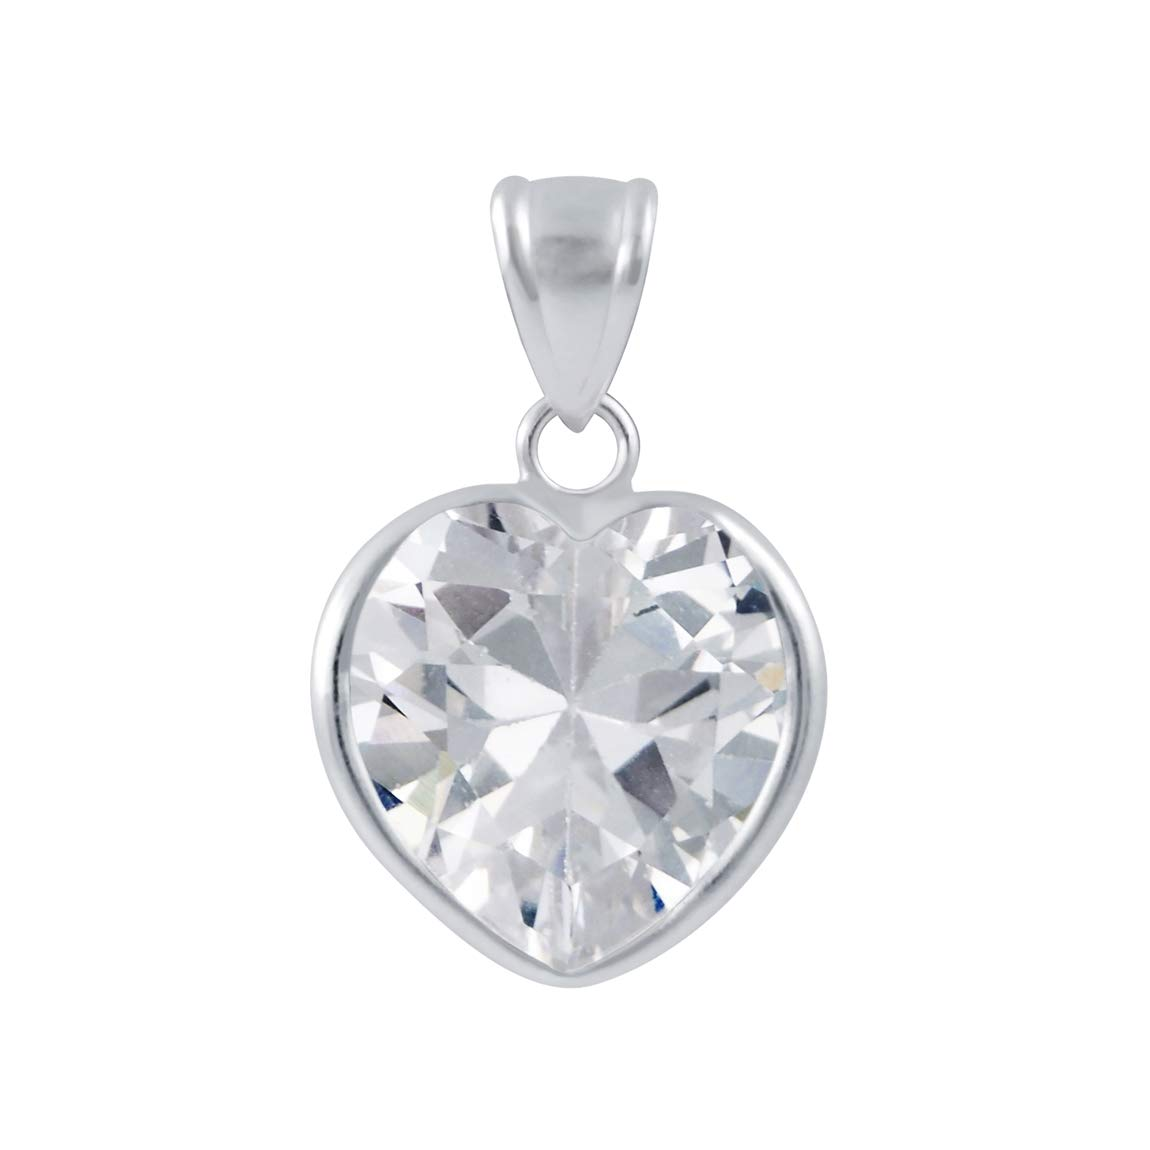 White 12mm Heart Cubic Zirconia 925 Sterling Silver Pendant